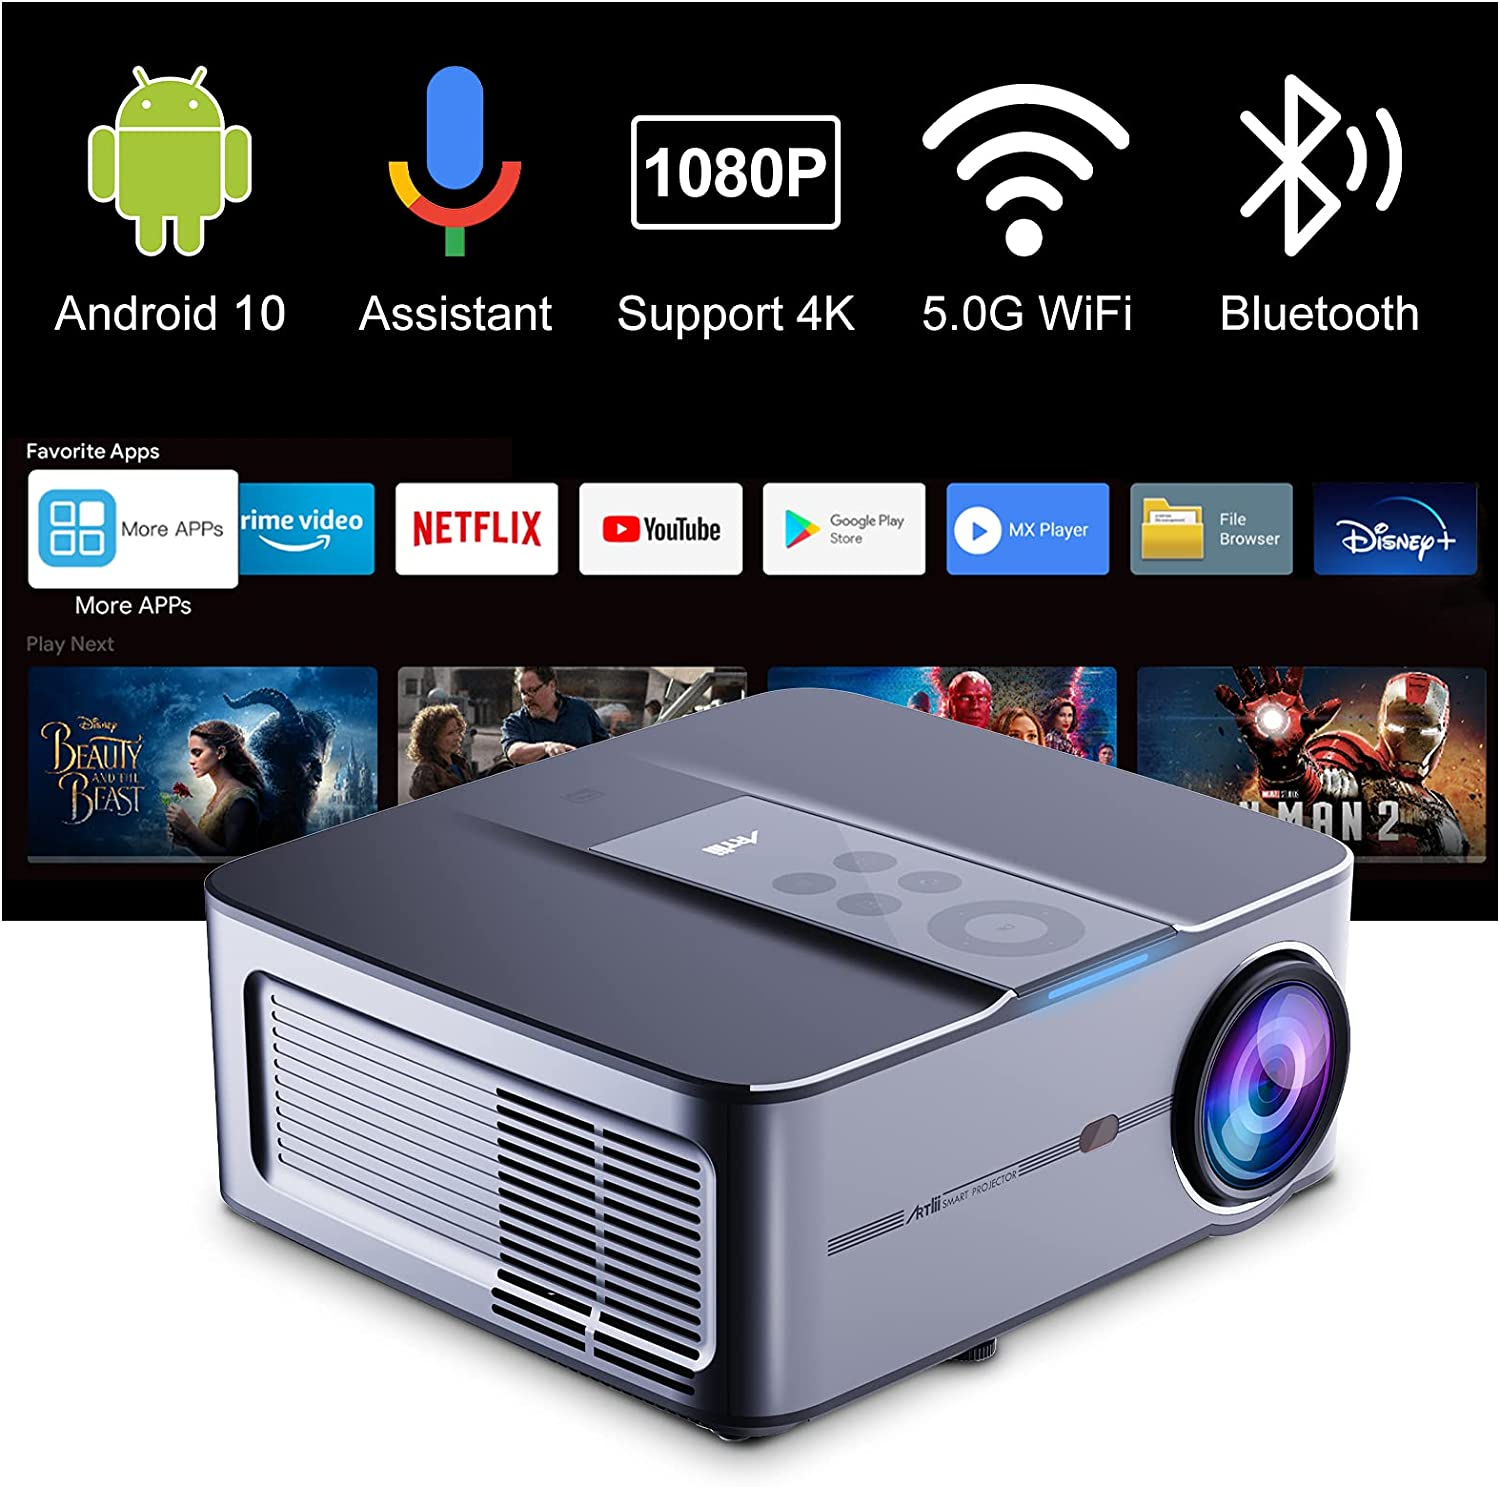 Smart Projector depot 4k Supported Artlii Play3 shopping 5G Native WiFi 1080P